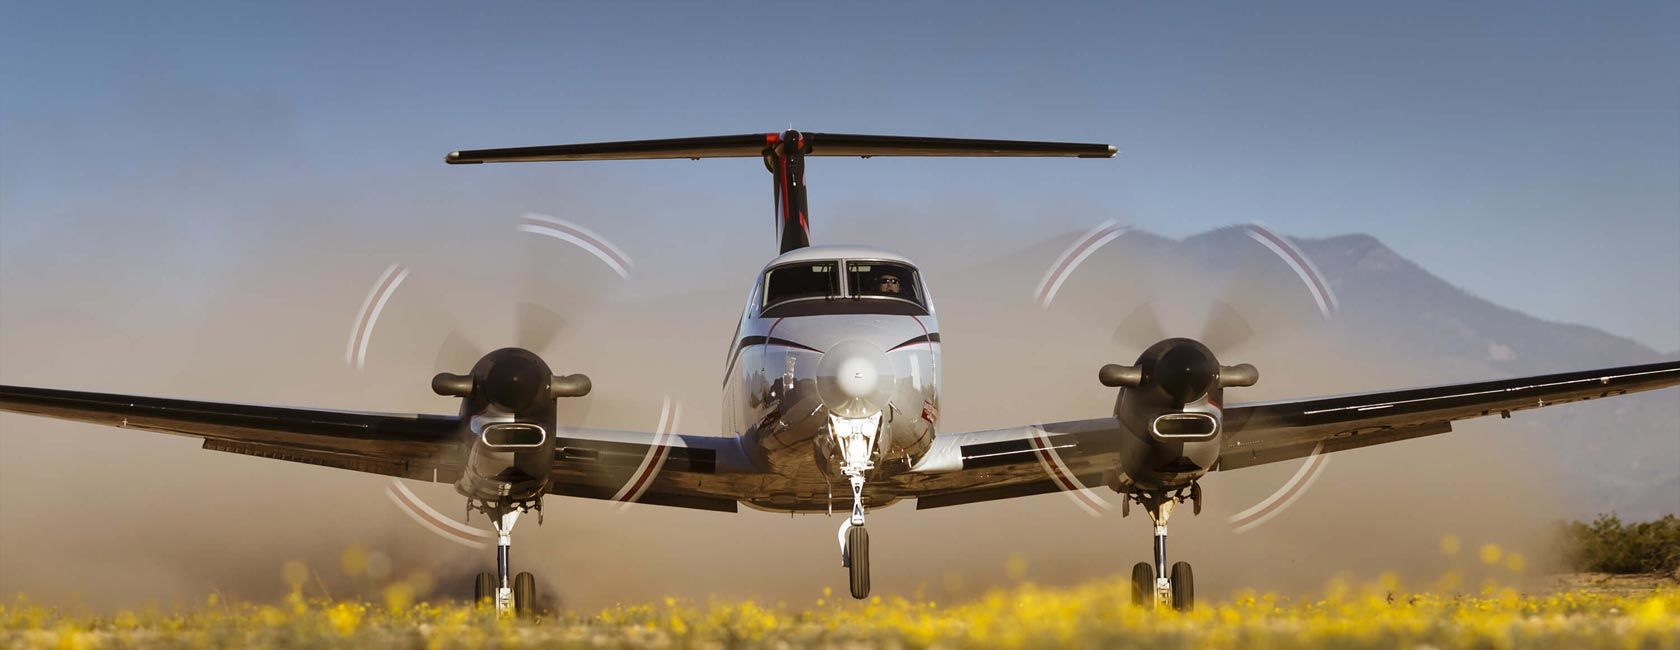 Special Mission Enhancements For The King Air 350 Platform